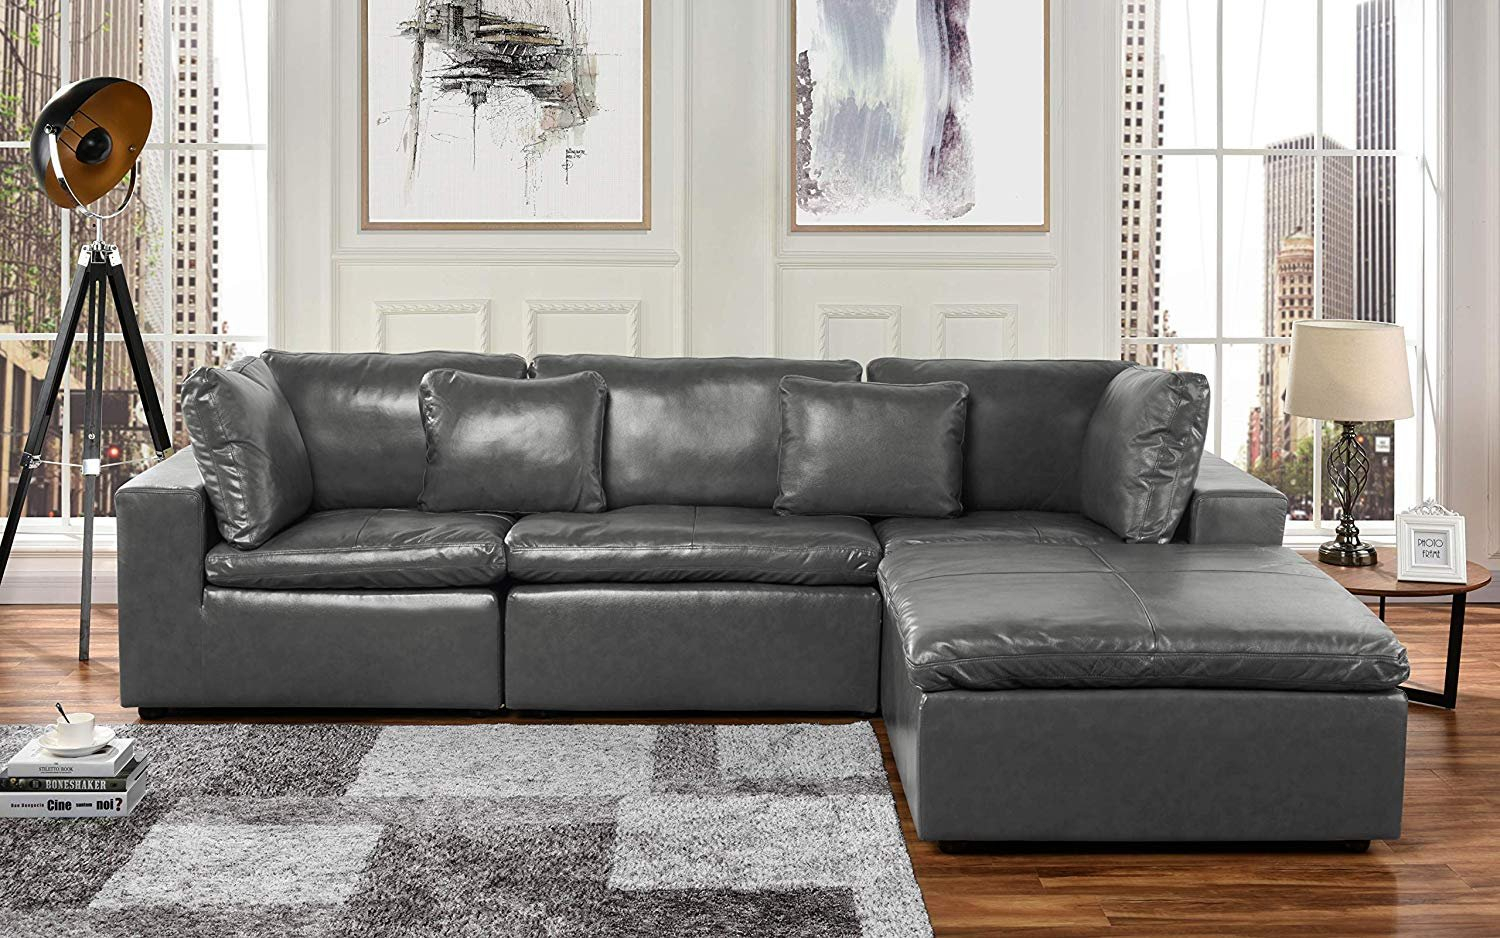 Large Leather Sectional Sofa, L Shape Couch With Wide For Oversized Sectional Sofas (View 3 of 15)